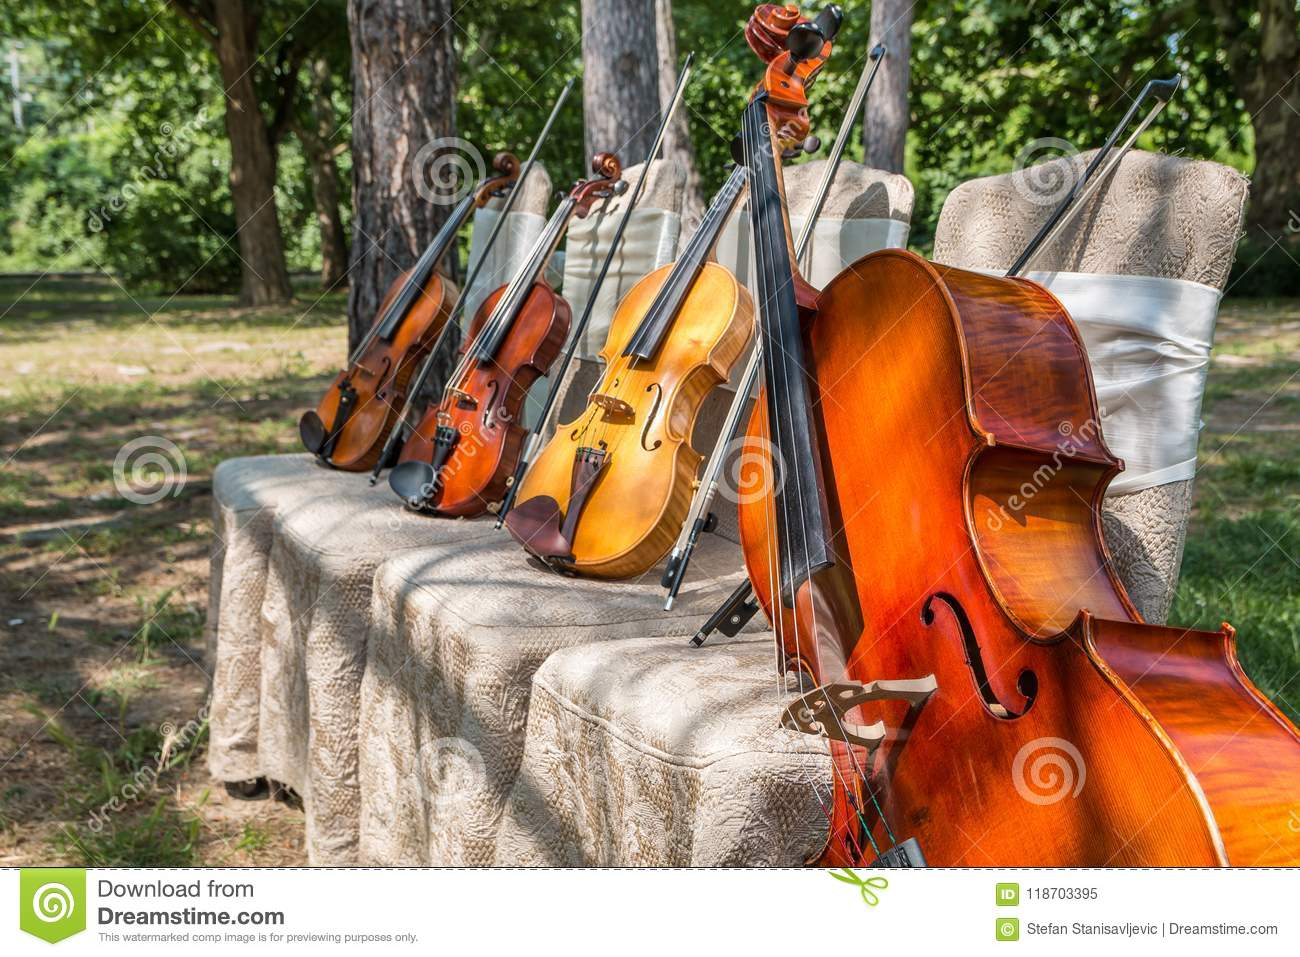 Music Instruments In Nature Stock Image - Image of